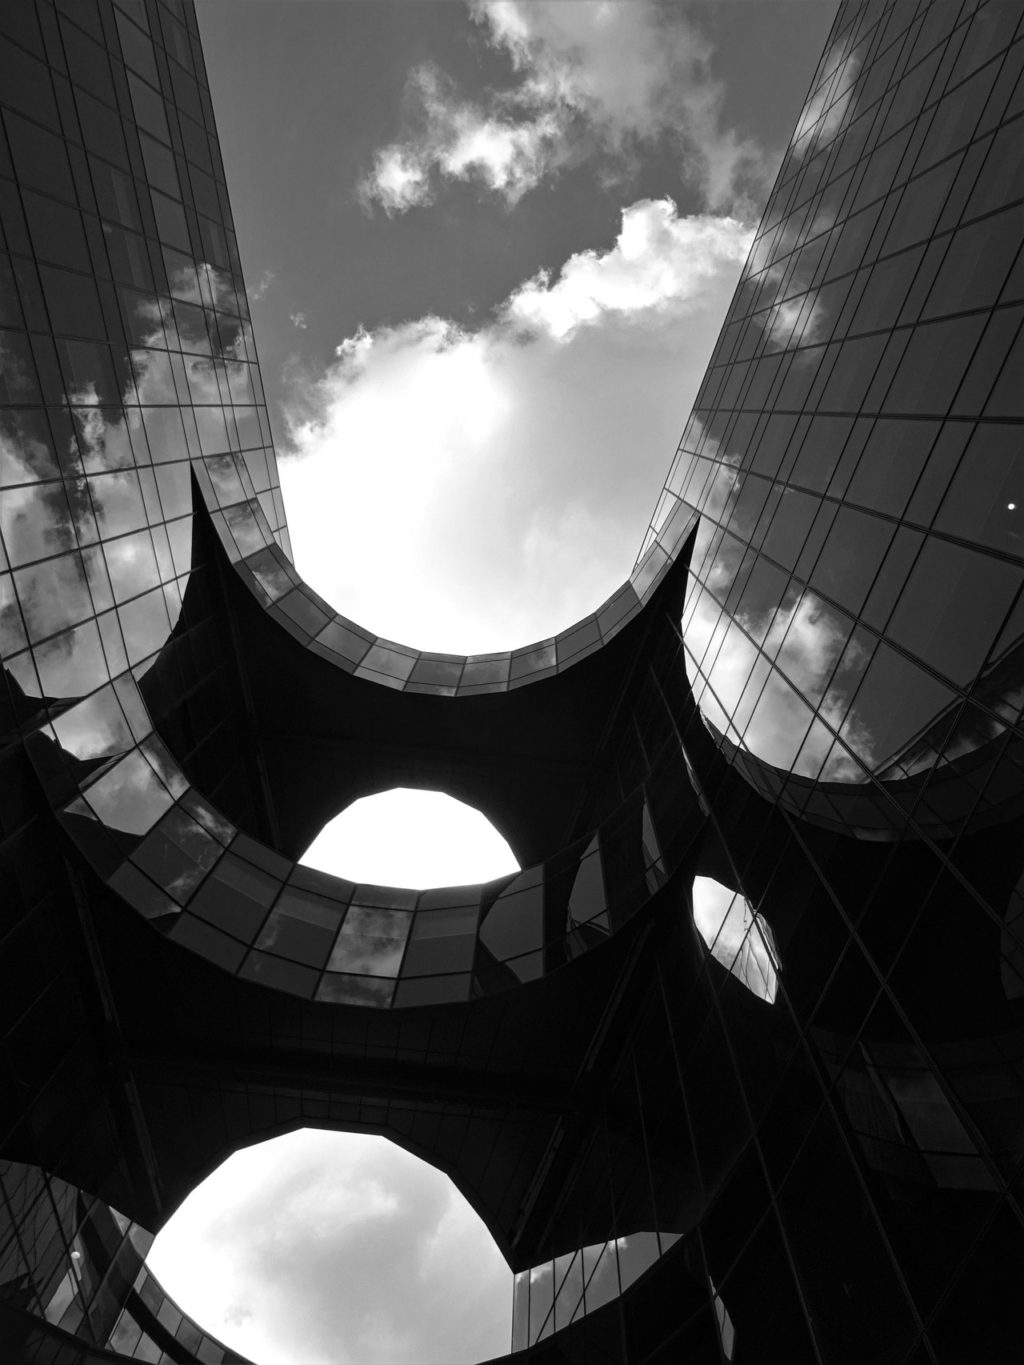 worm s eye view photography of a building